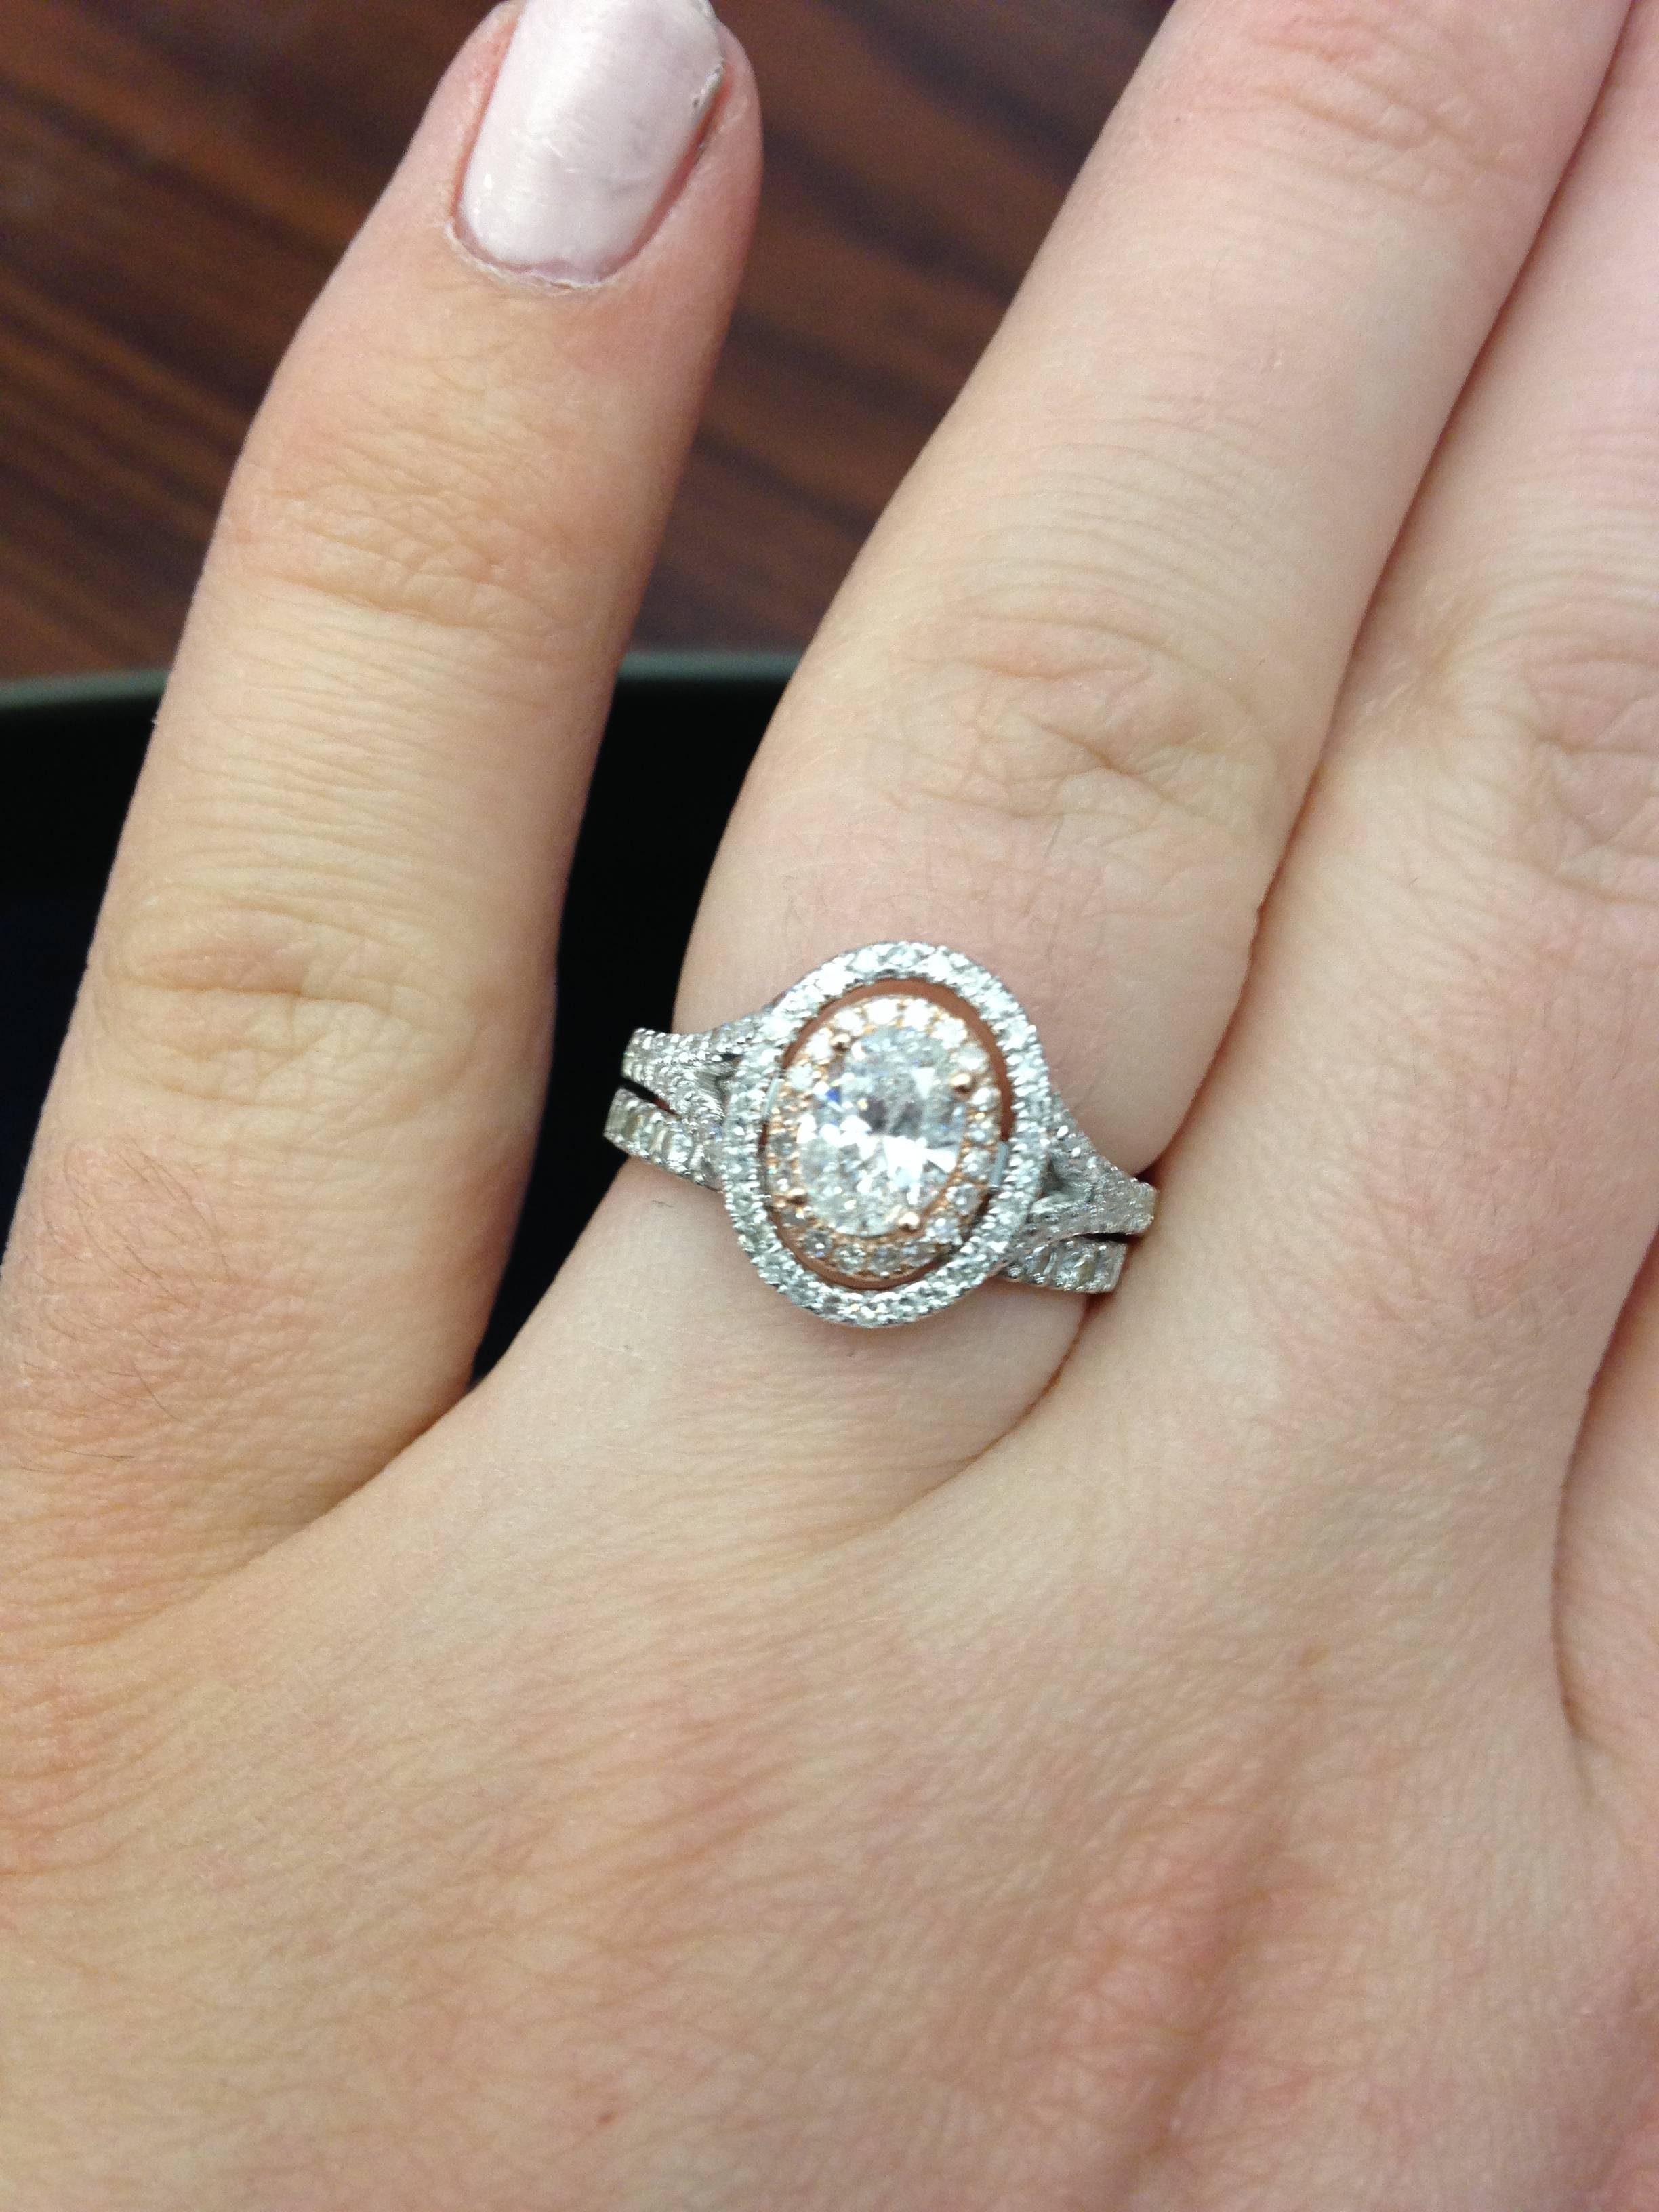 Show Me Your Oval Halo E Rings With Your Wedding Band! – Weddingbee Within Latest Oval Diamond Engagement Rings And Wedding Bands (View 10 of 15)